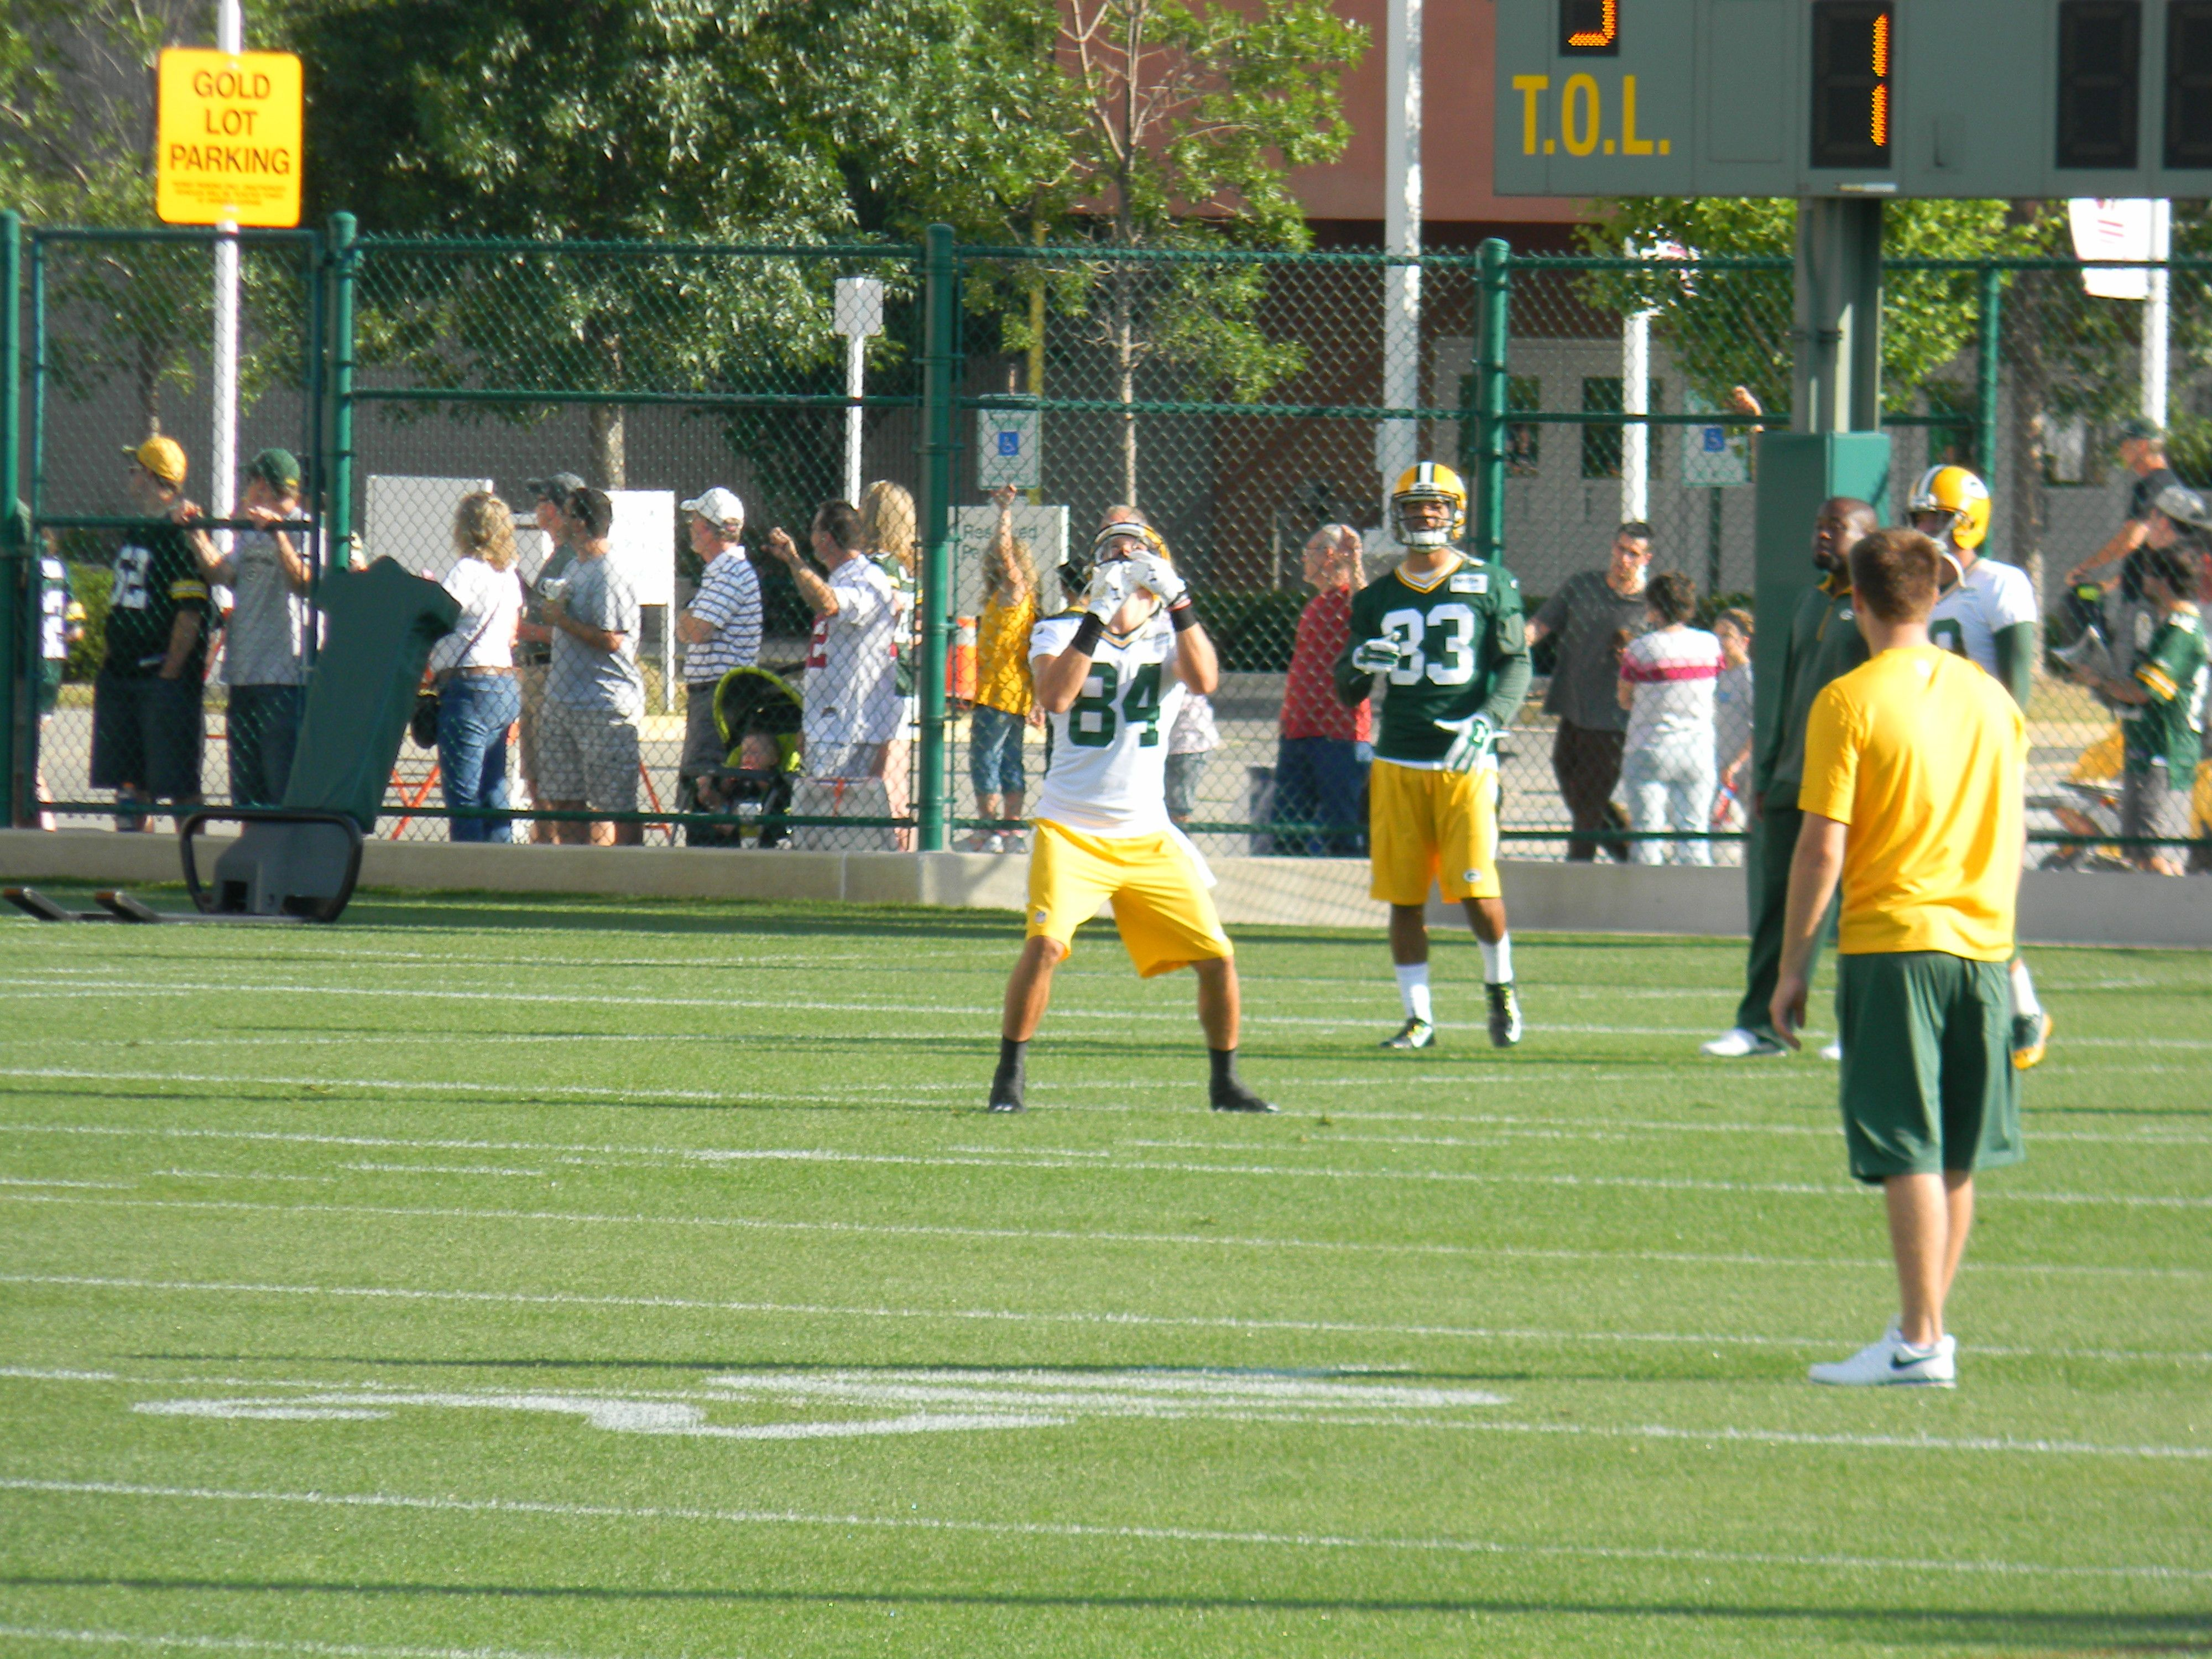 PACKERS FOOTBALL FRIDAY: Guys That Have to be Good: Jared Abbrederis - http://packerstalk.com/2014/08/01/packers-football-friday-guys-that-have-to-be-good-jared-abbrederis/ http://packerstalk.com/wp-content/uploads/2014/07/DSCN1362-1024x768.jpg